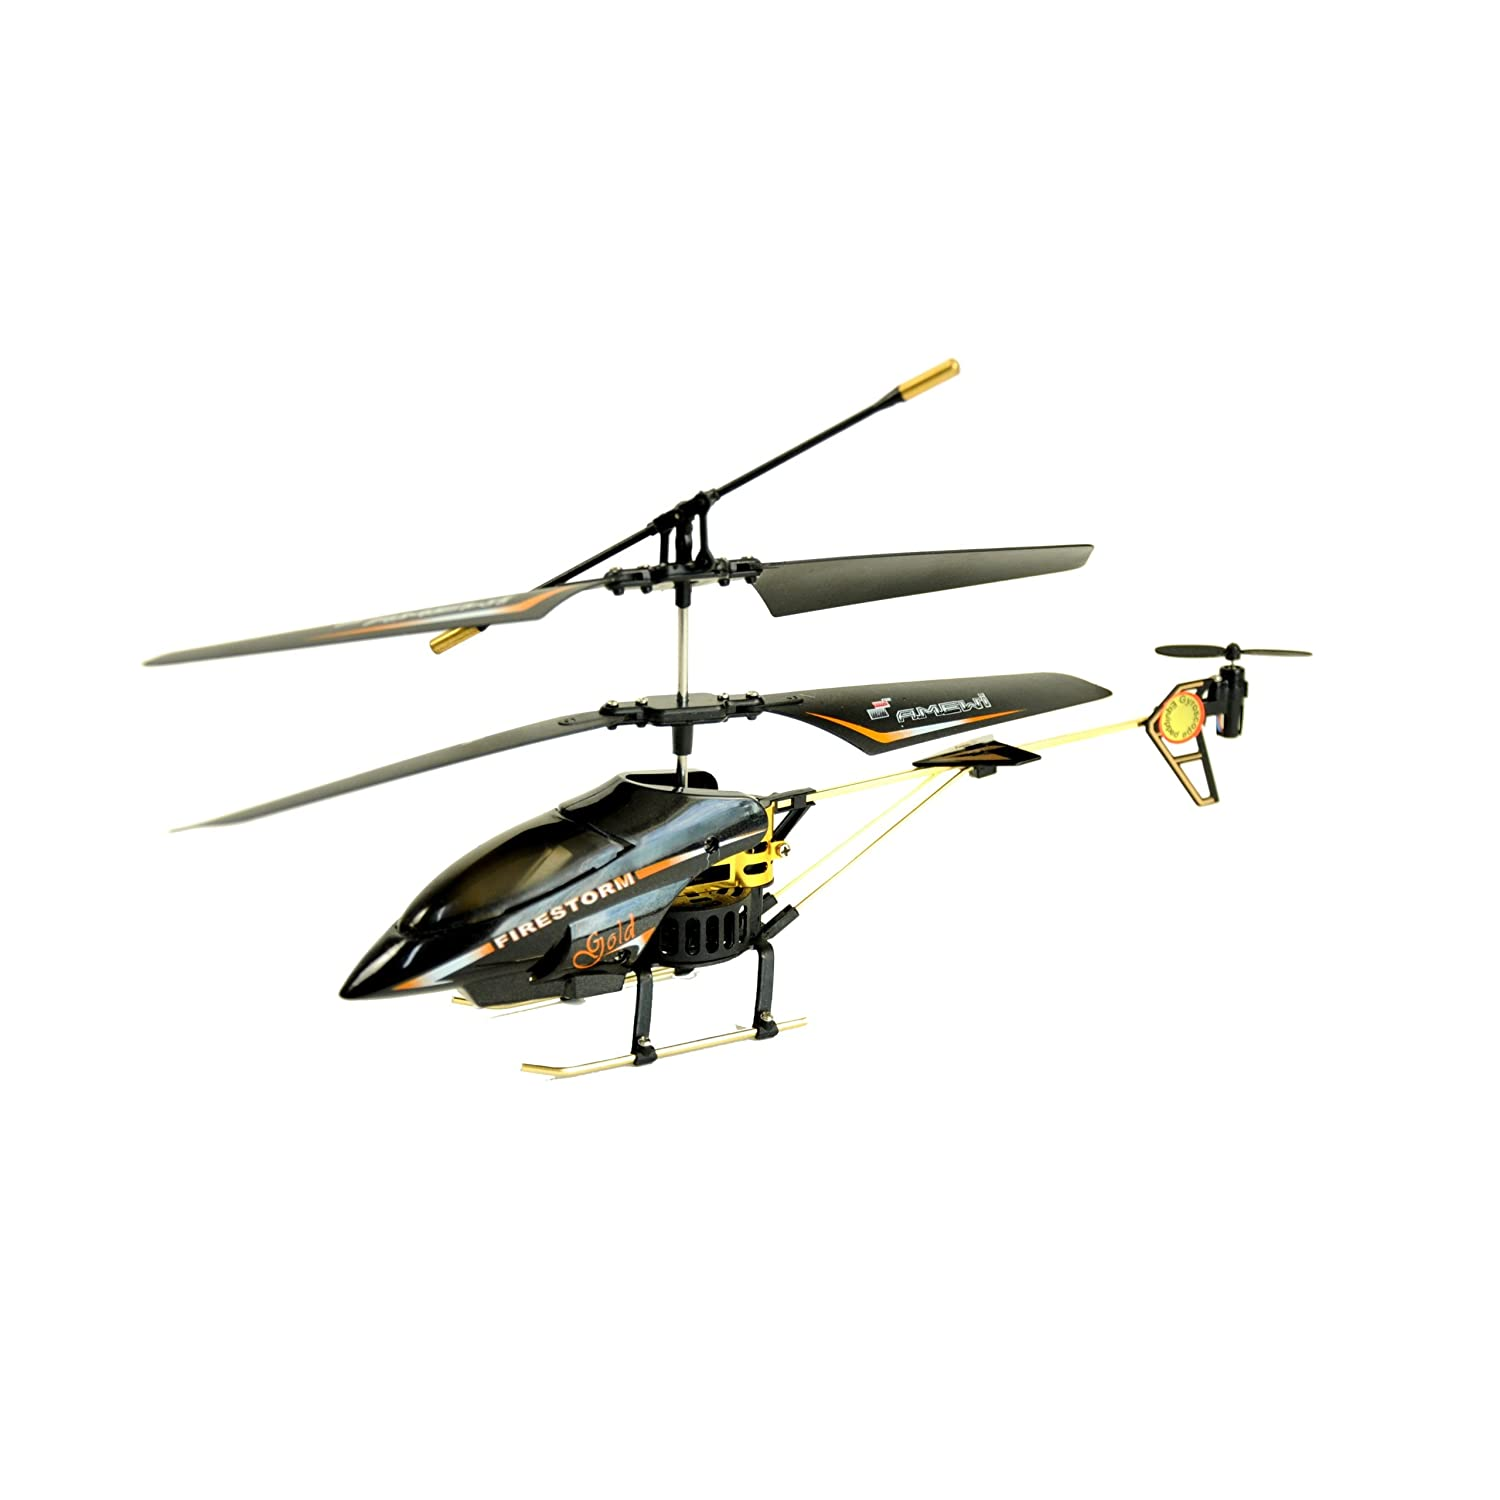 Firestorm GOLD, Indoor Helikopter